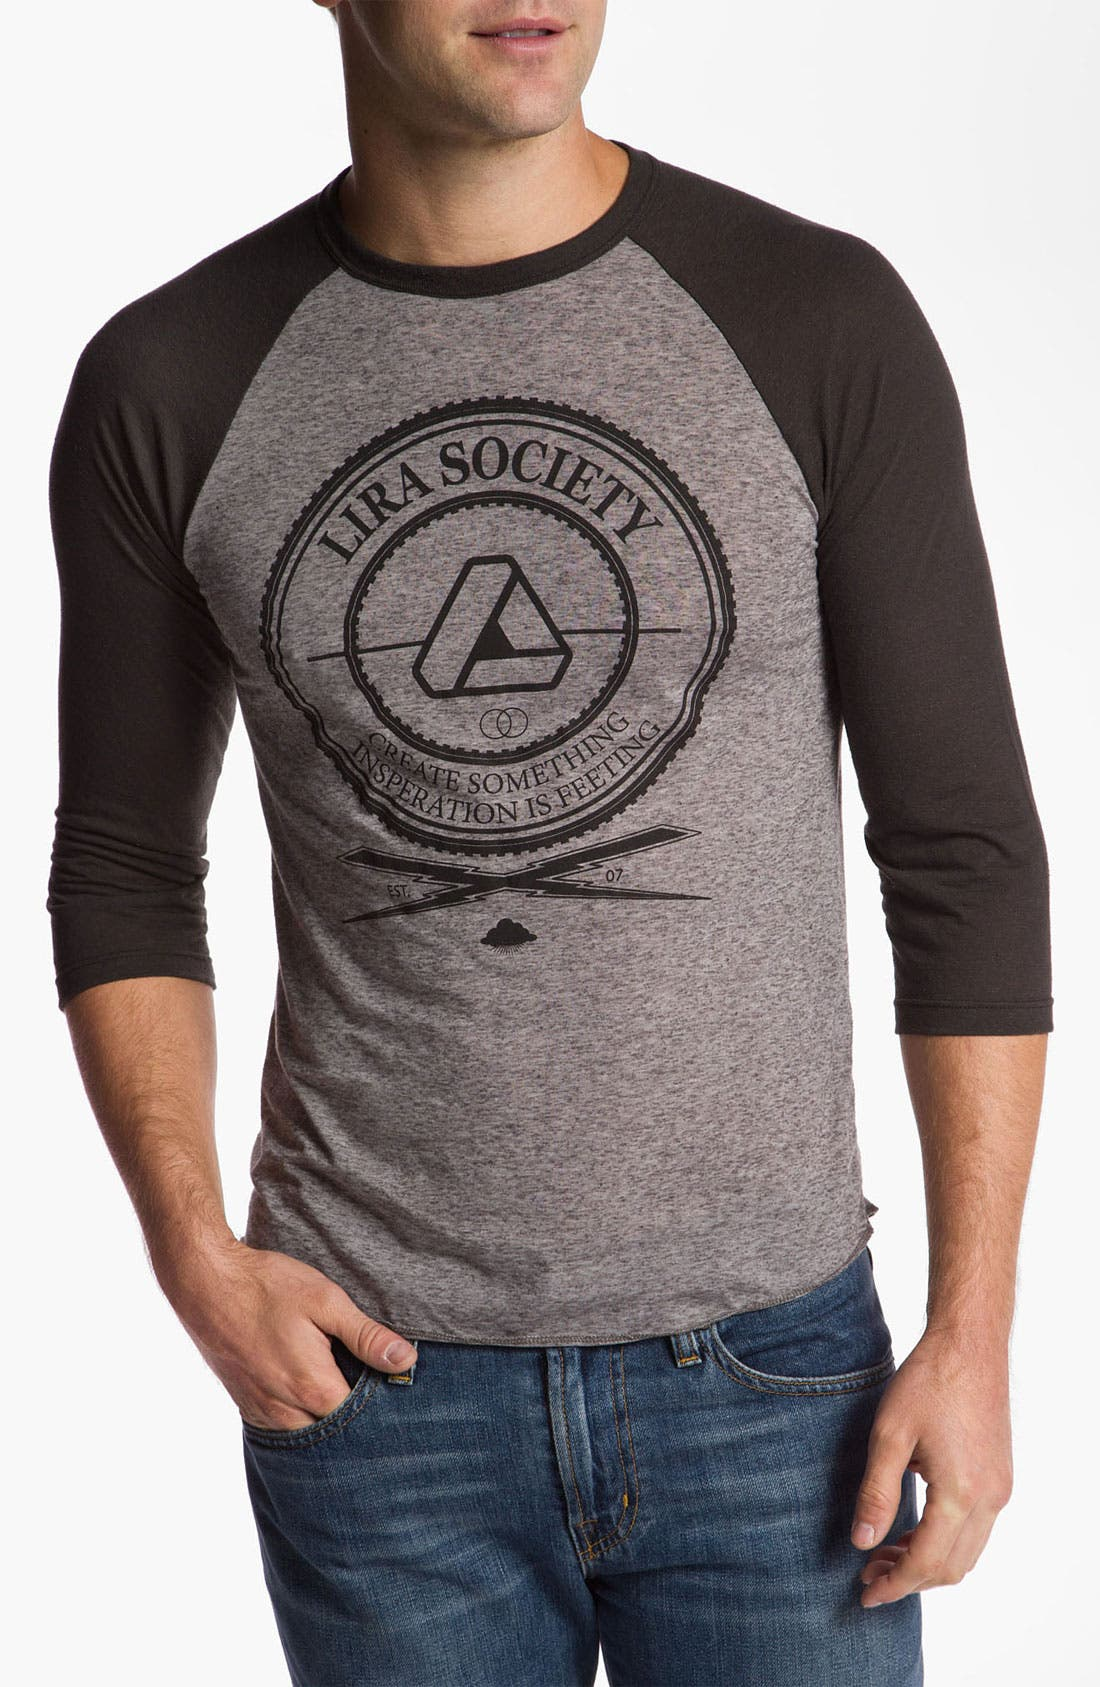 Alternate Image 1 Selected - Lira Clothing Graphic Crewneck T-Shirt